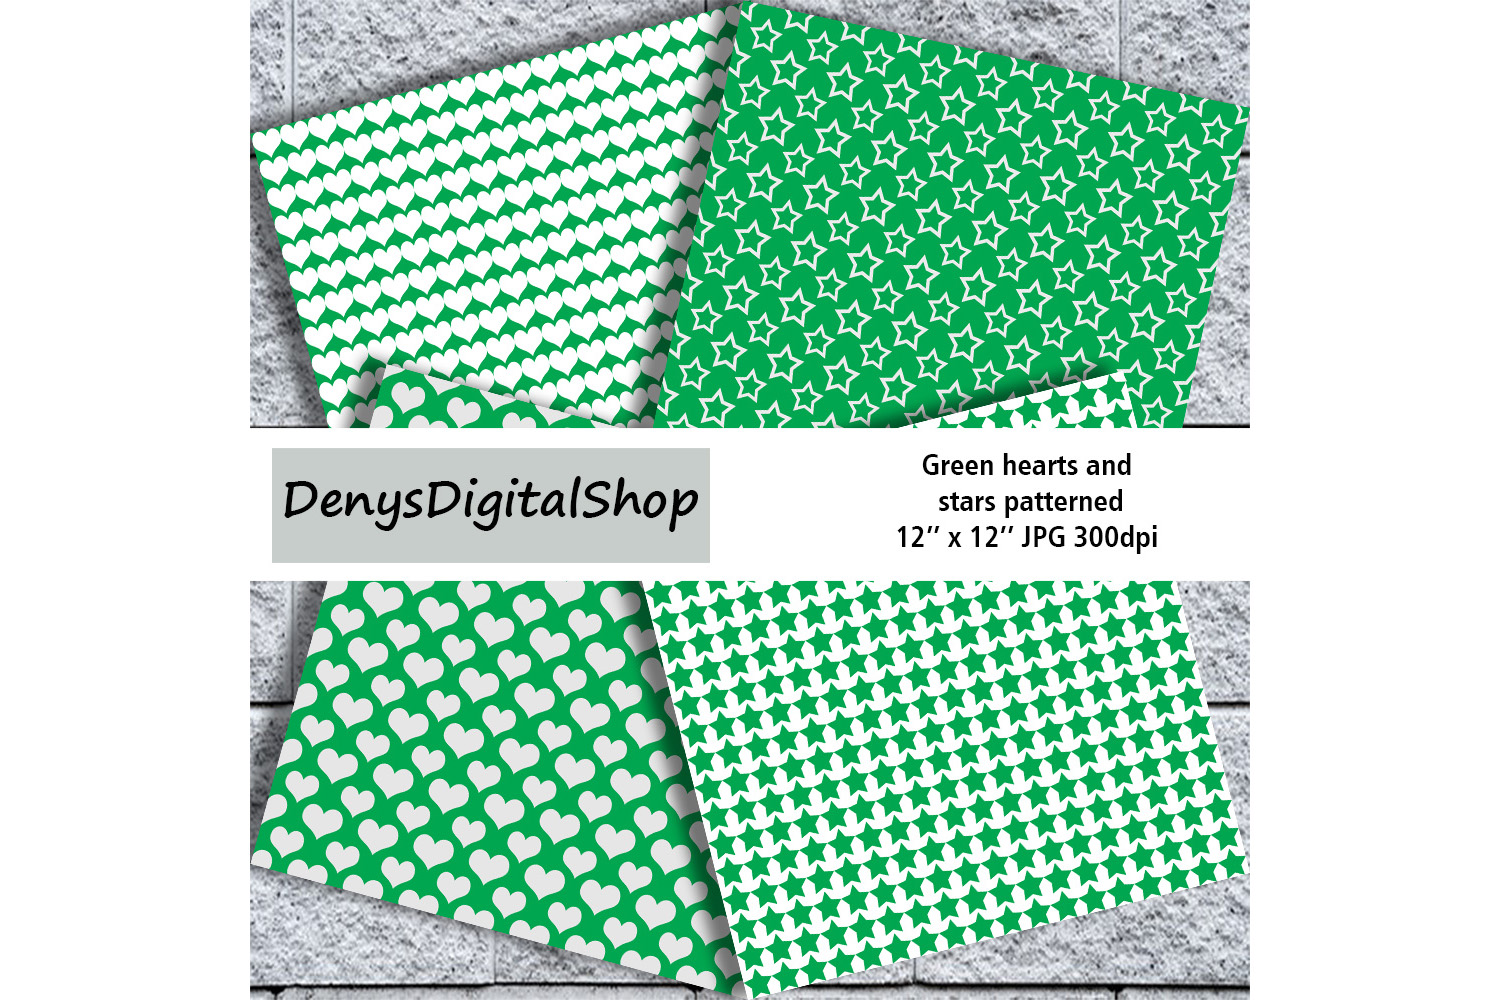 Green heart, stars patterned, green, white, stars, OFF, SALE example image 3